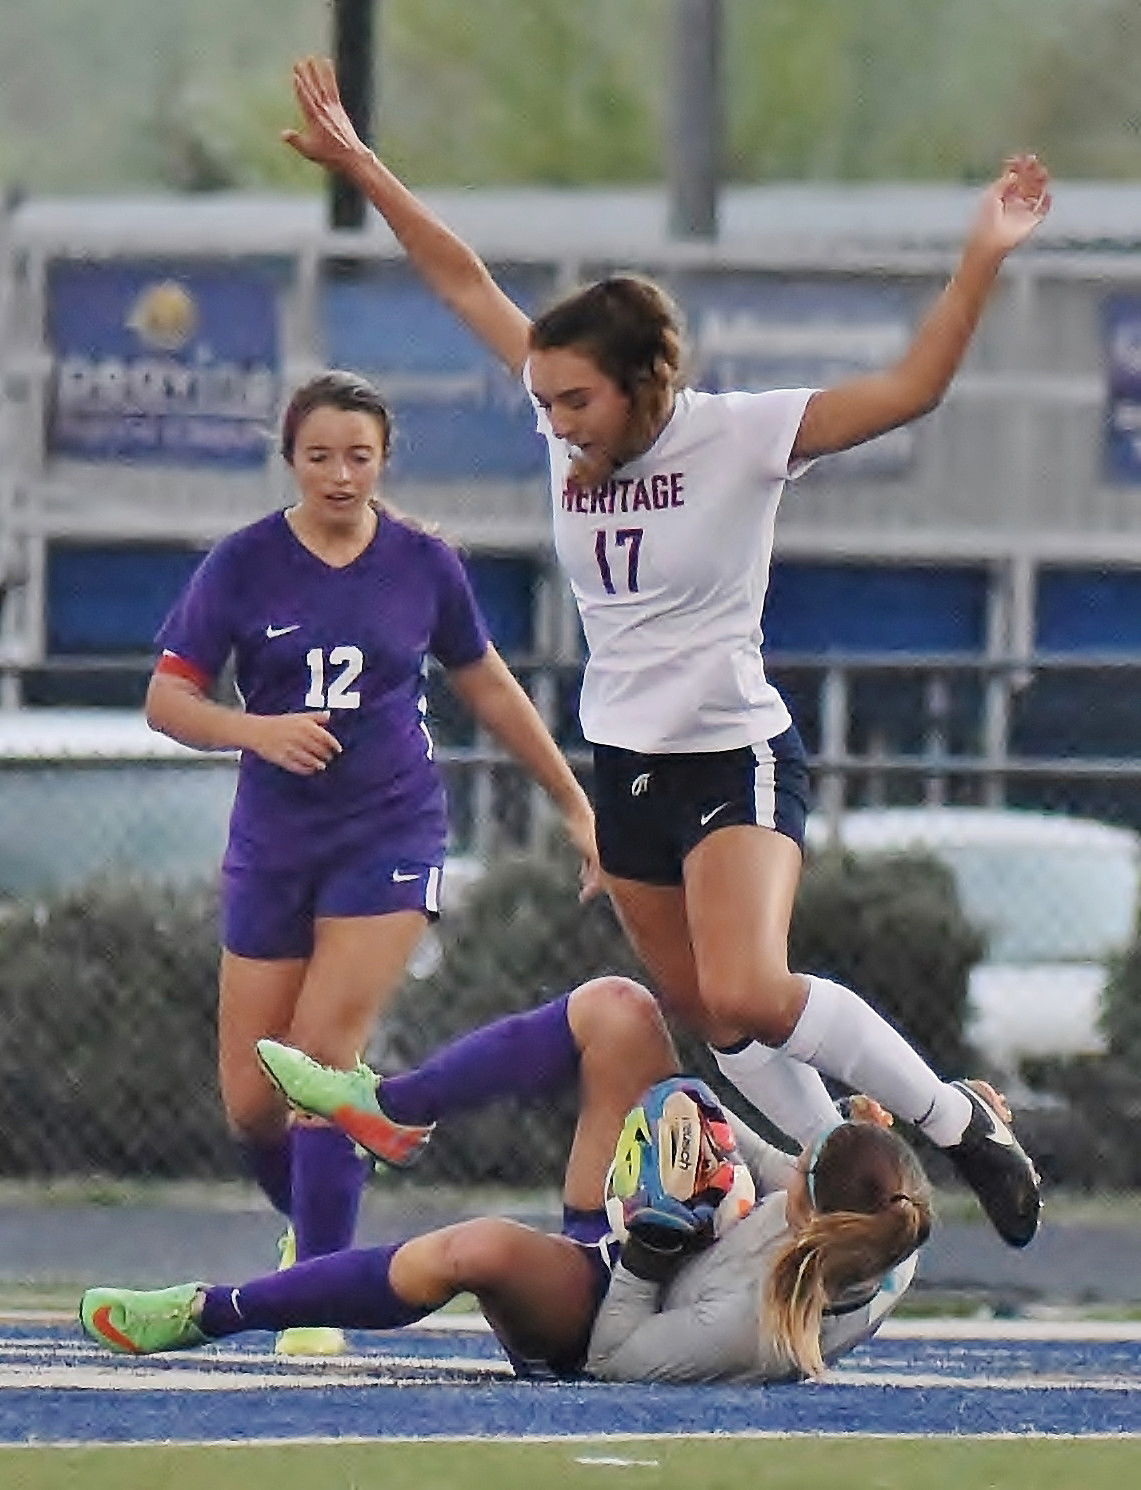 Cartersville senior goalkeeper Kalli Scheff made a save at the feet of a Heritage player in the first round of the GHSA Class 4A state tournament. Scheff and her teammates will face St. Pius in the second round on the road Tuesday.